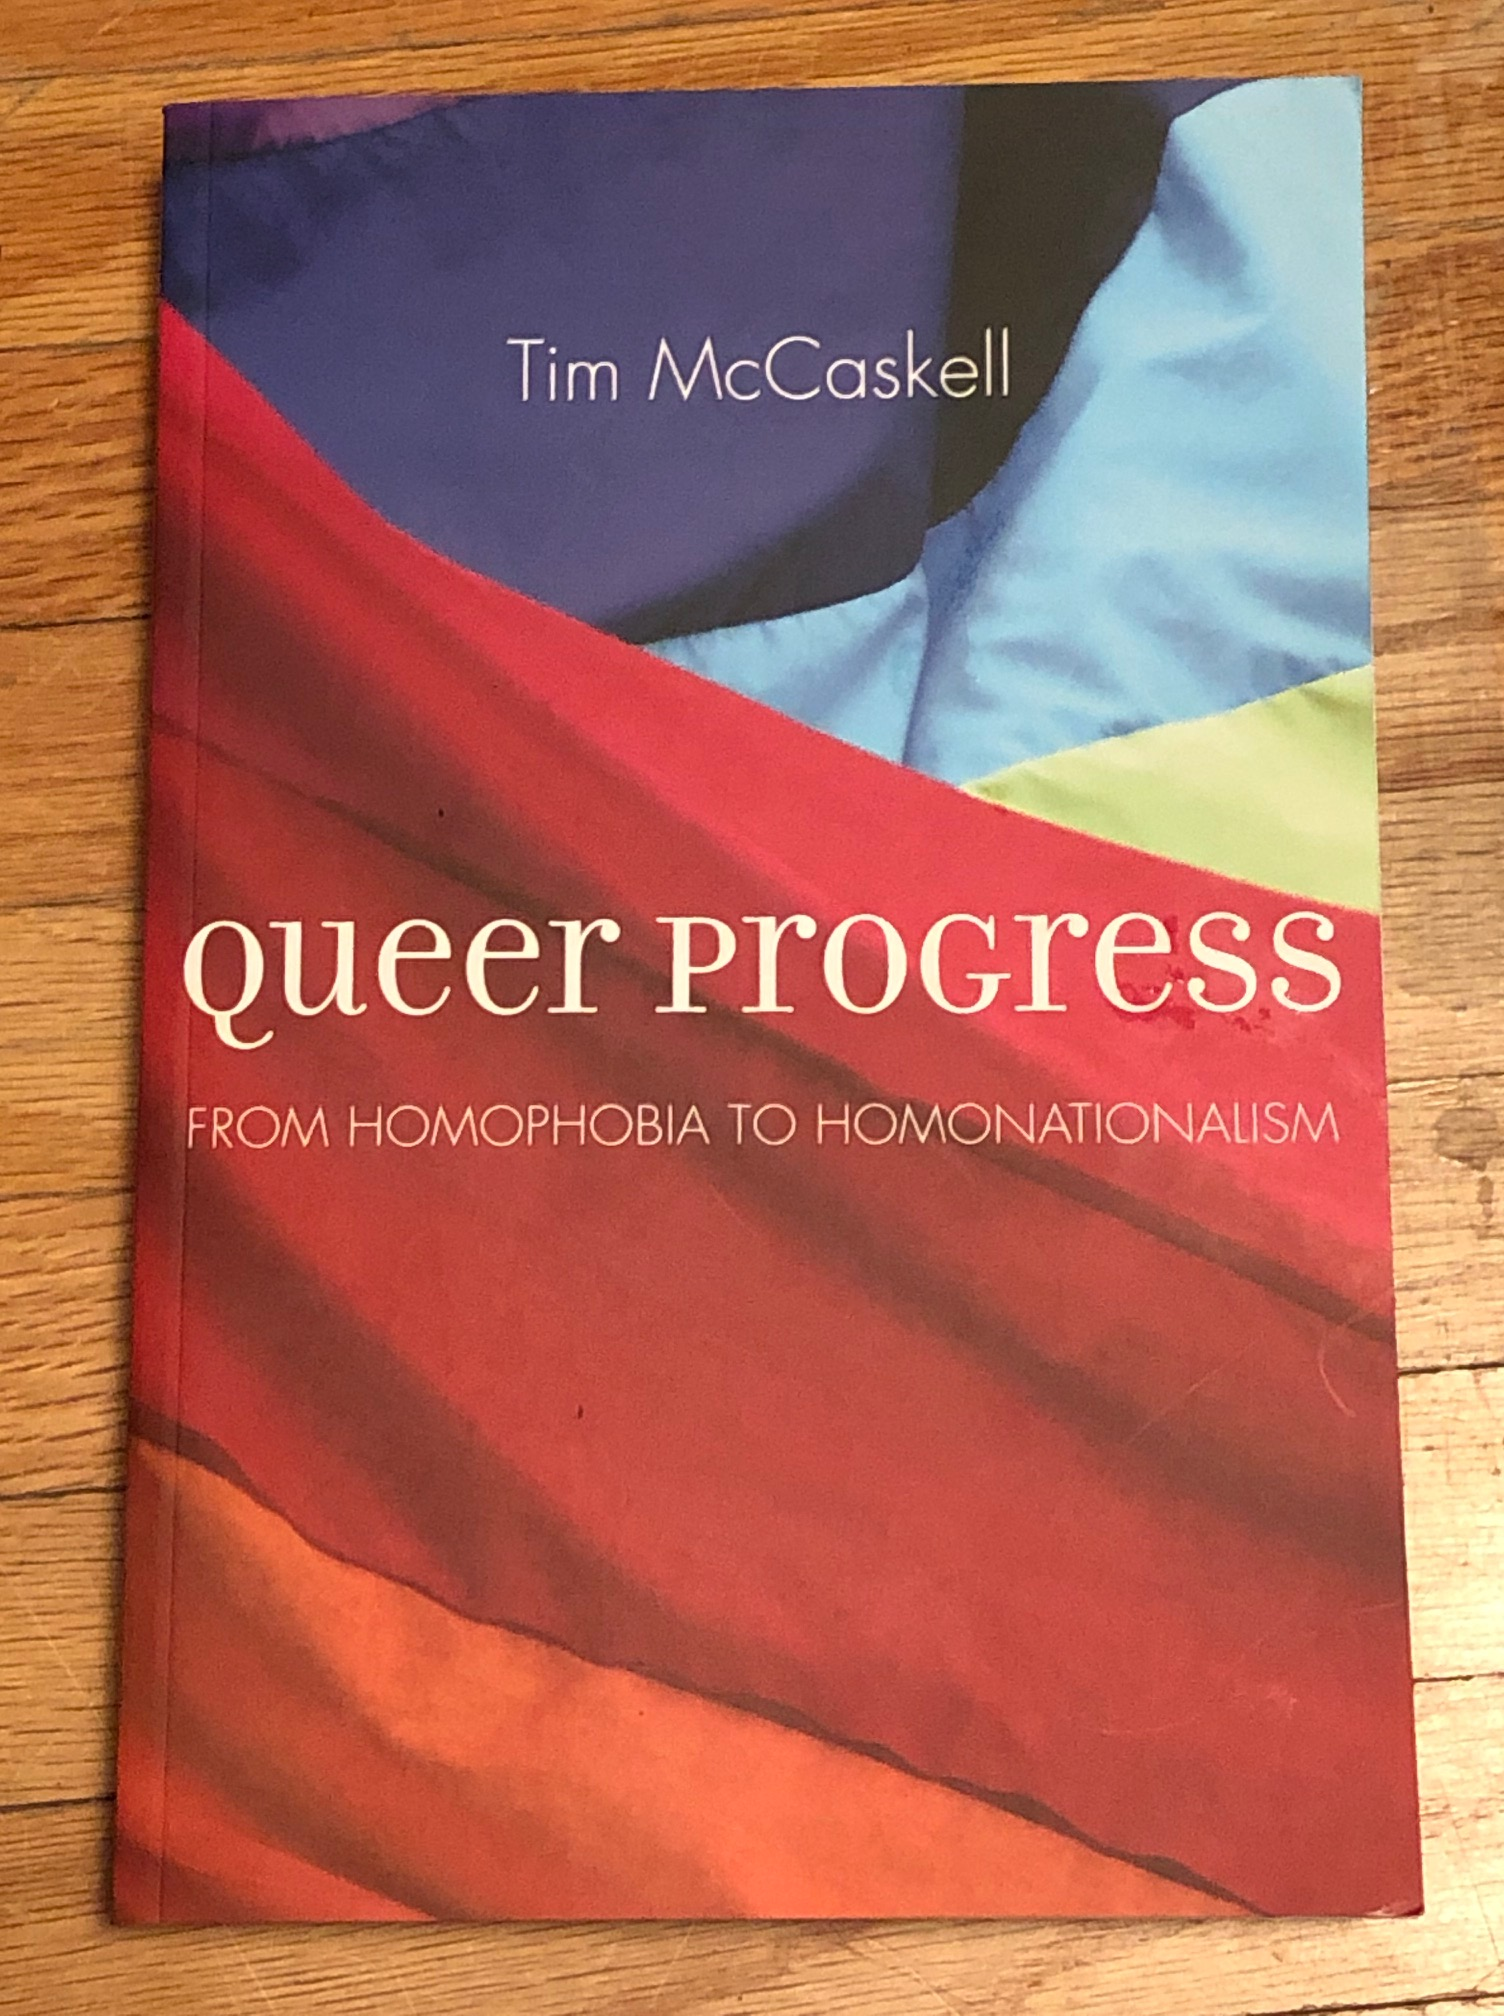 Queer Progress: From Homophobia to Homonationalism by Tim McCaskell